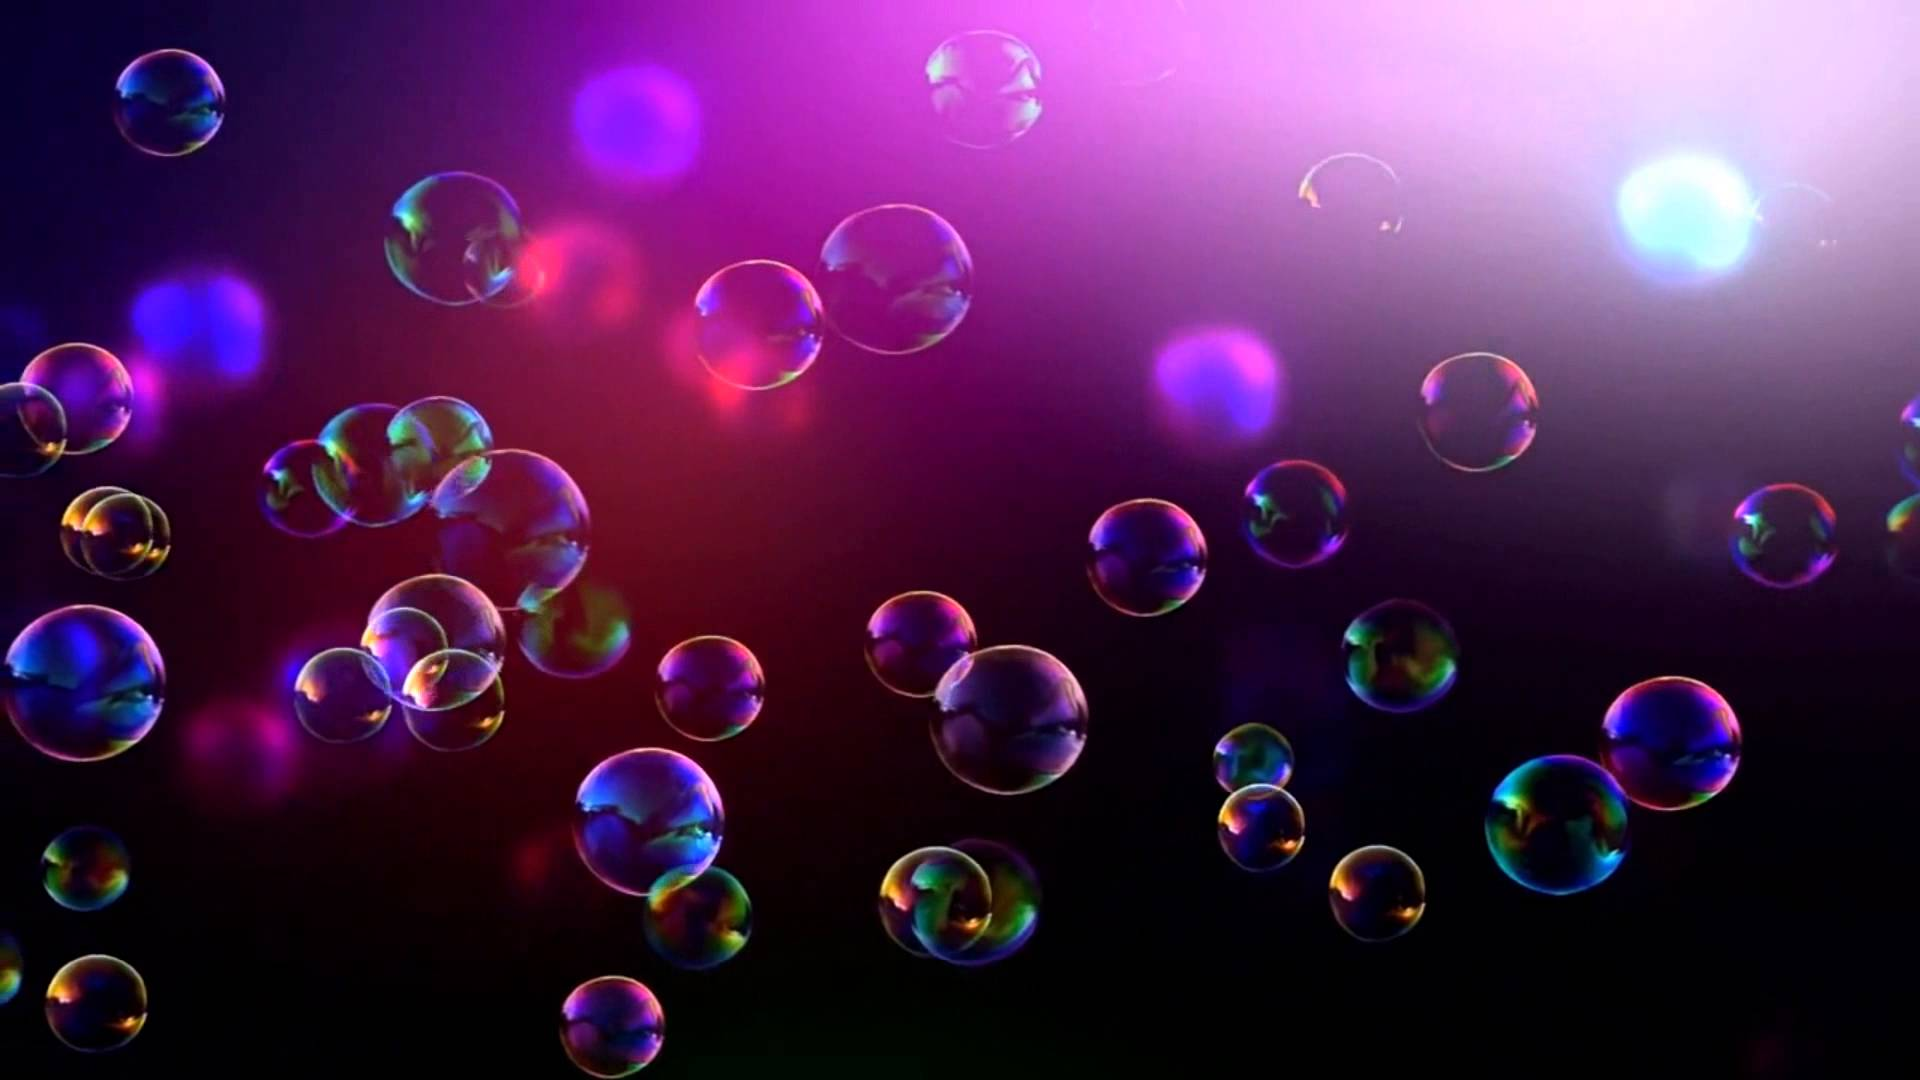 Cheerful Background Wallpaper Back Ground Images Bubble 1699514 Hd Wallpaper Backgrounds Download